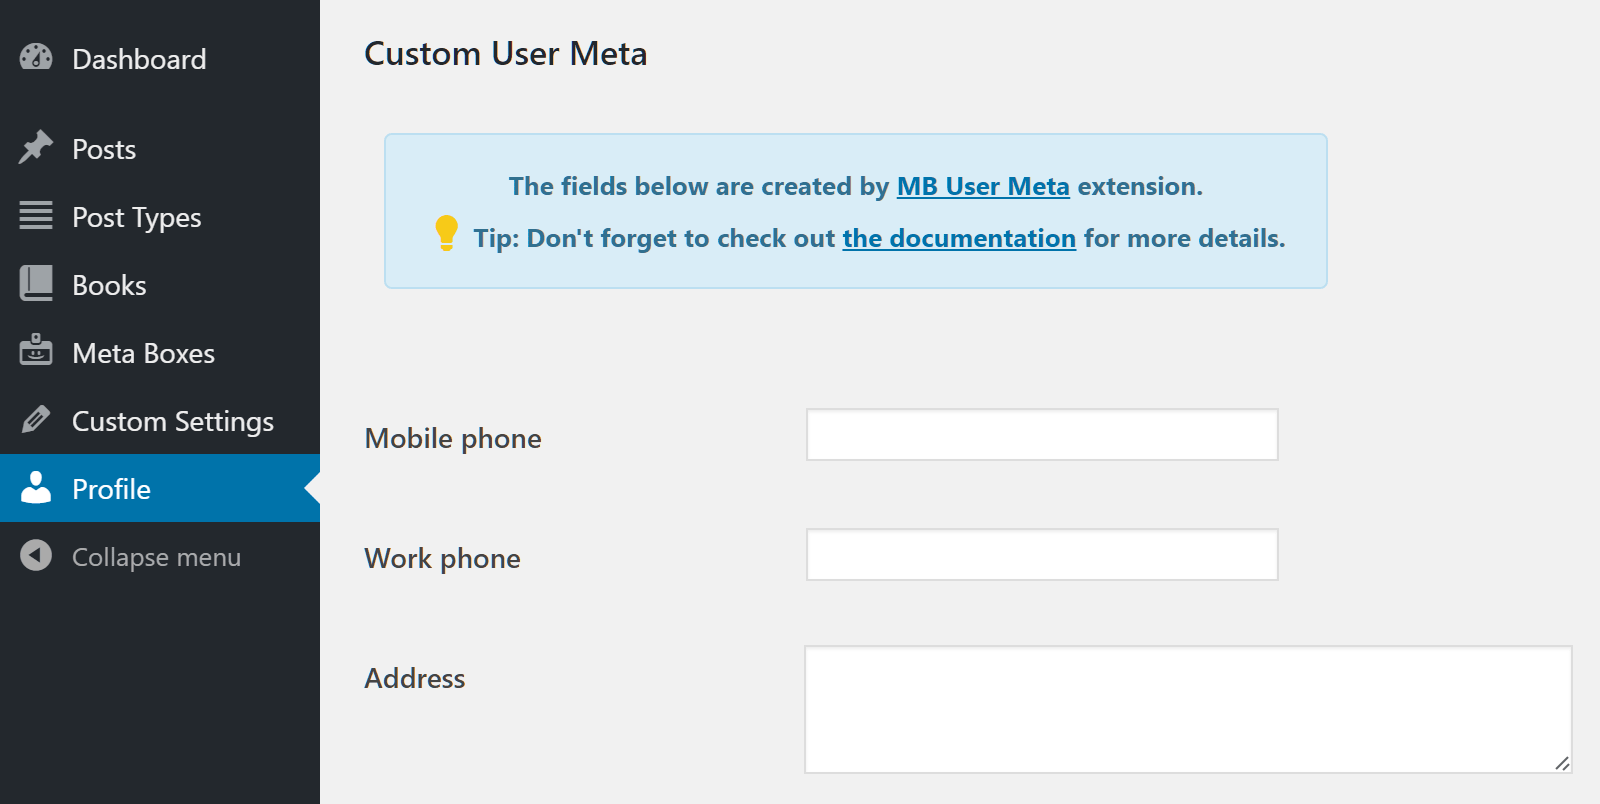 Custom User Meta